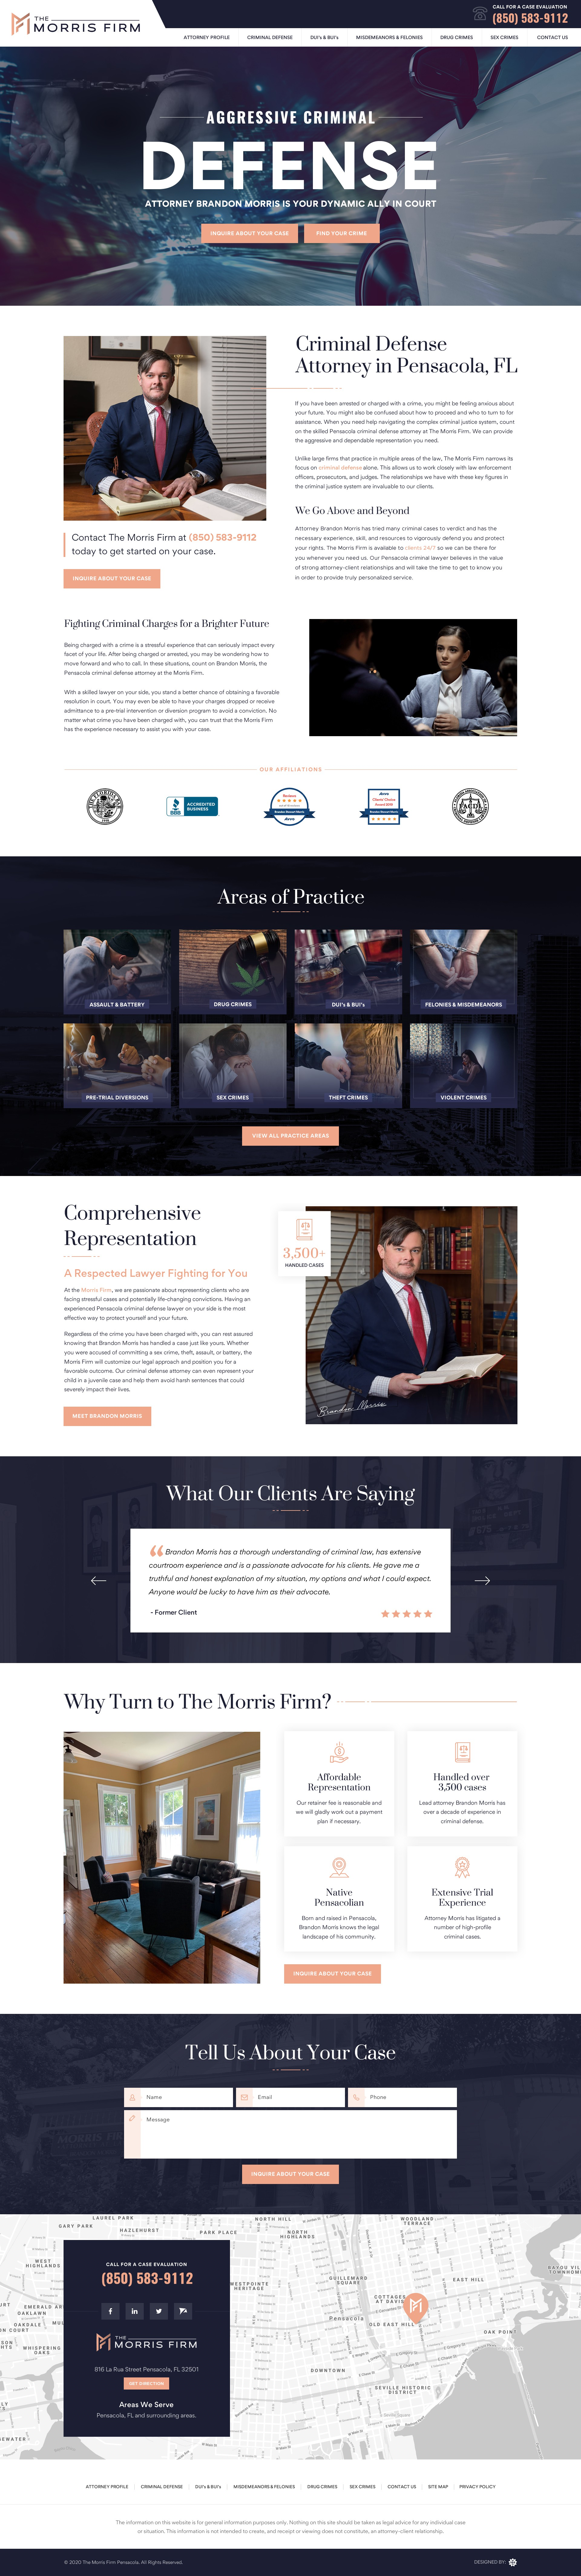 Sleek and powerful website design for a criminal defense attorney